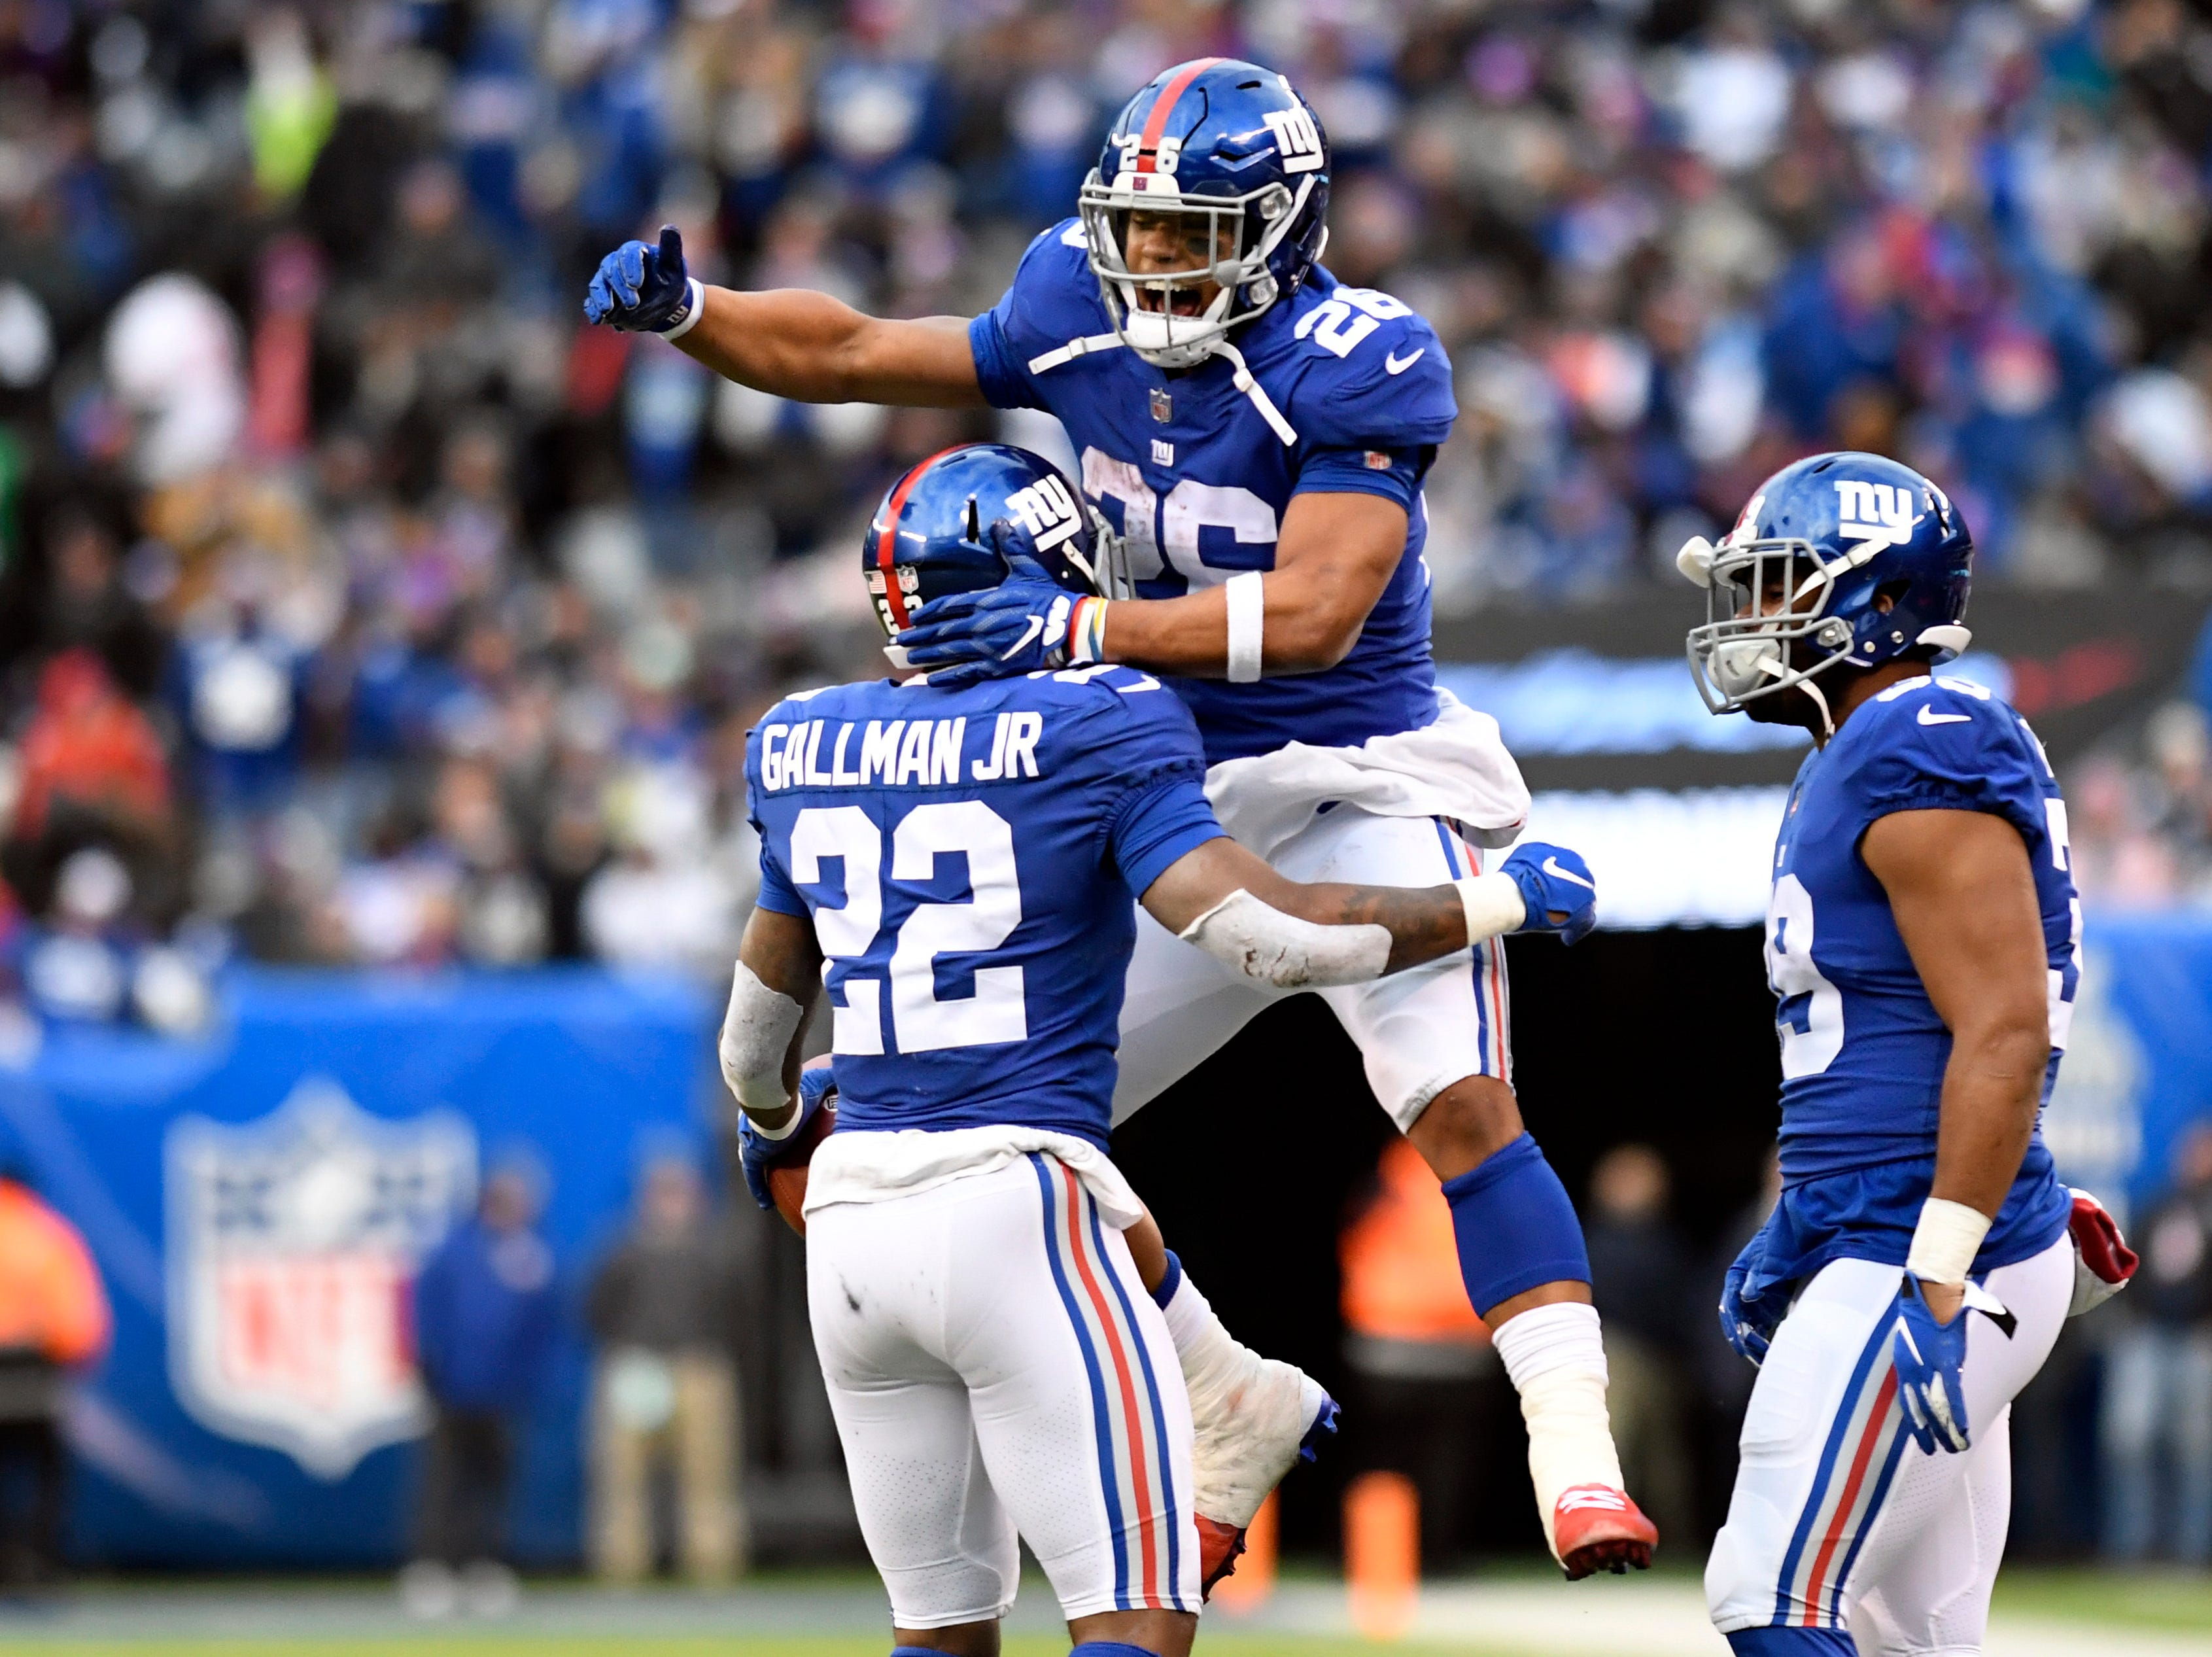 New York Giants running back Saquon Barkley (26) celebrates Wayne Gallman's (22) touchdown in the fourth quarter. The New York Giants lose to the Dallas Cowboys 36-35 on Sunday, Dec. 30, 2018, in East Rutherford.